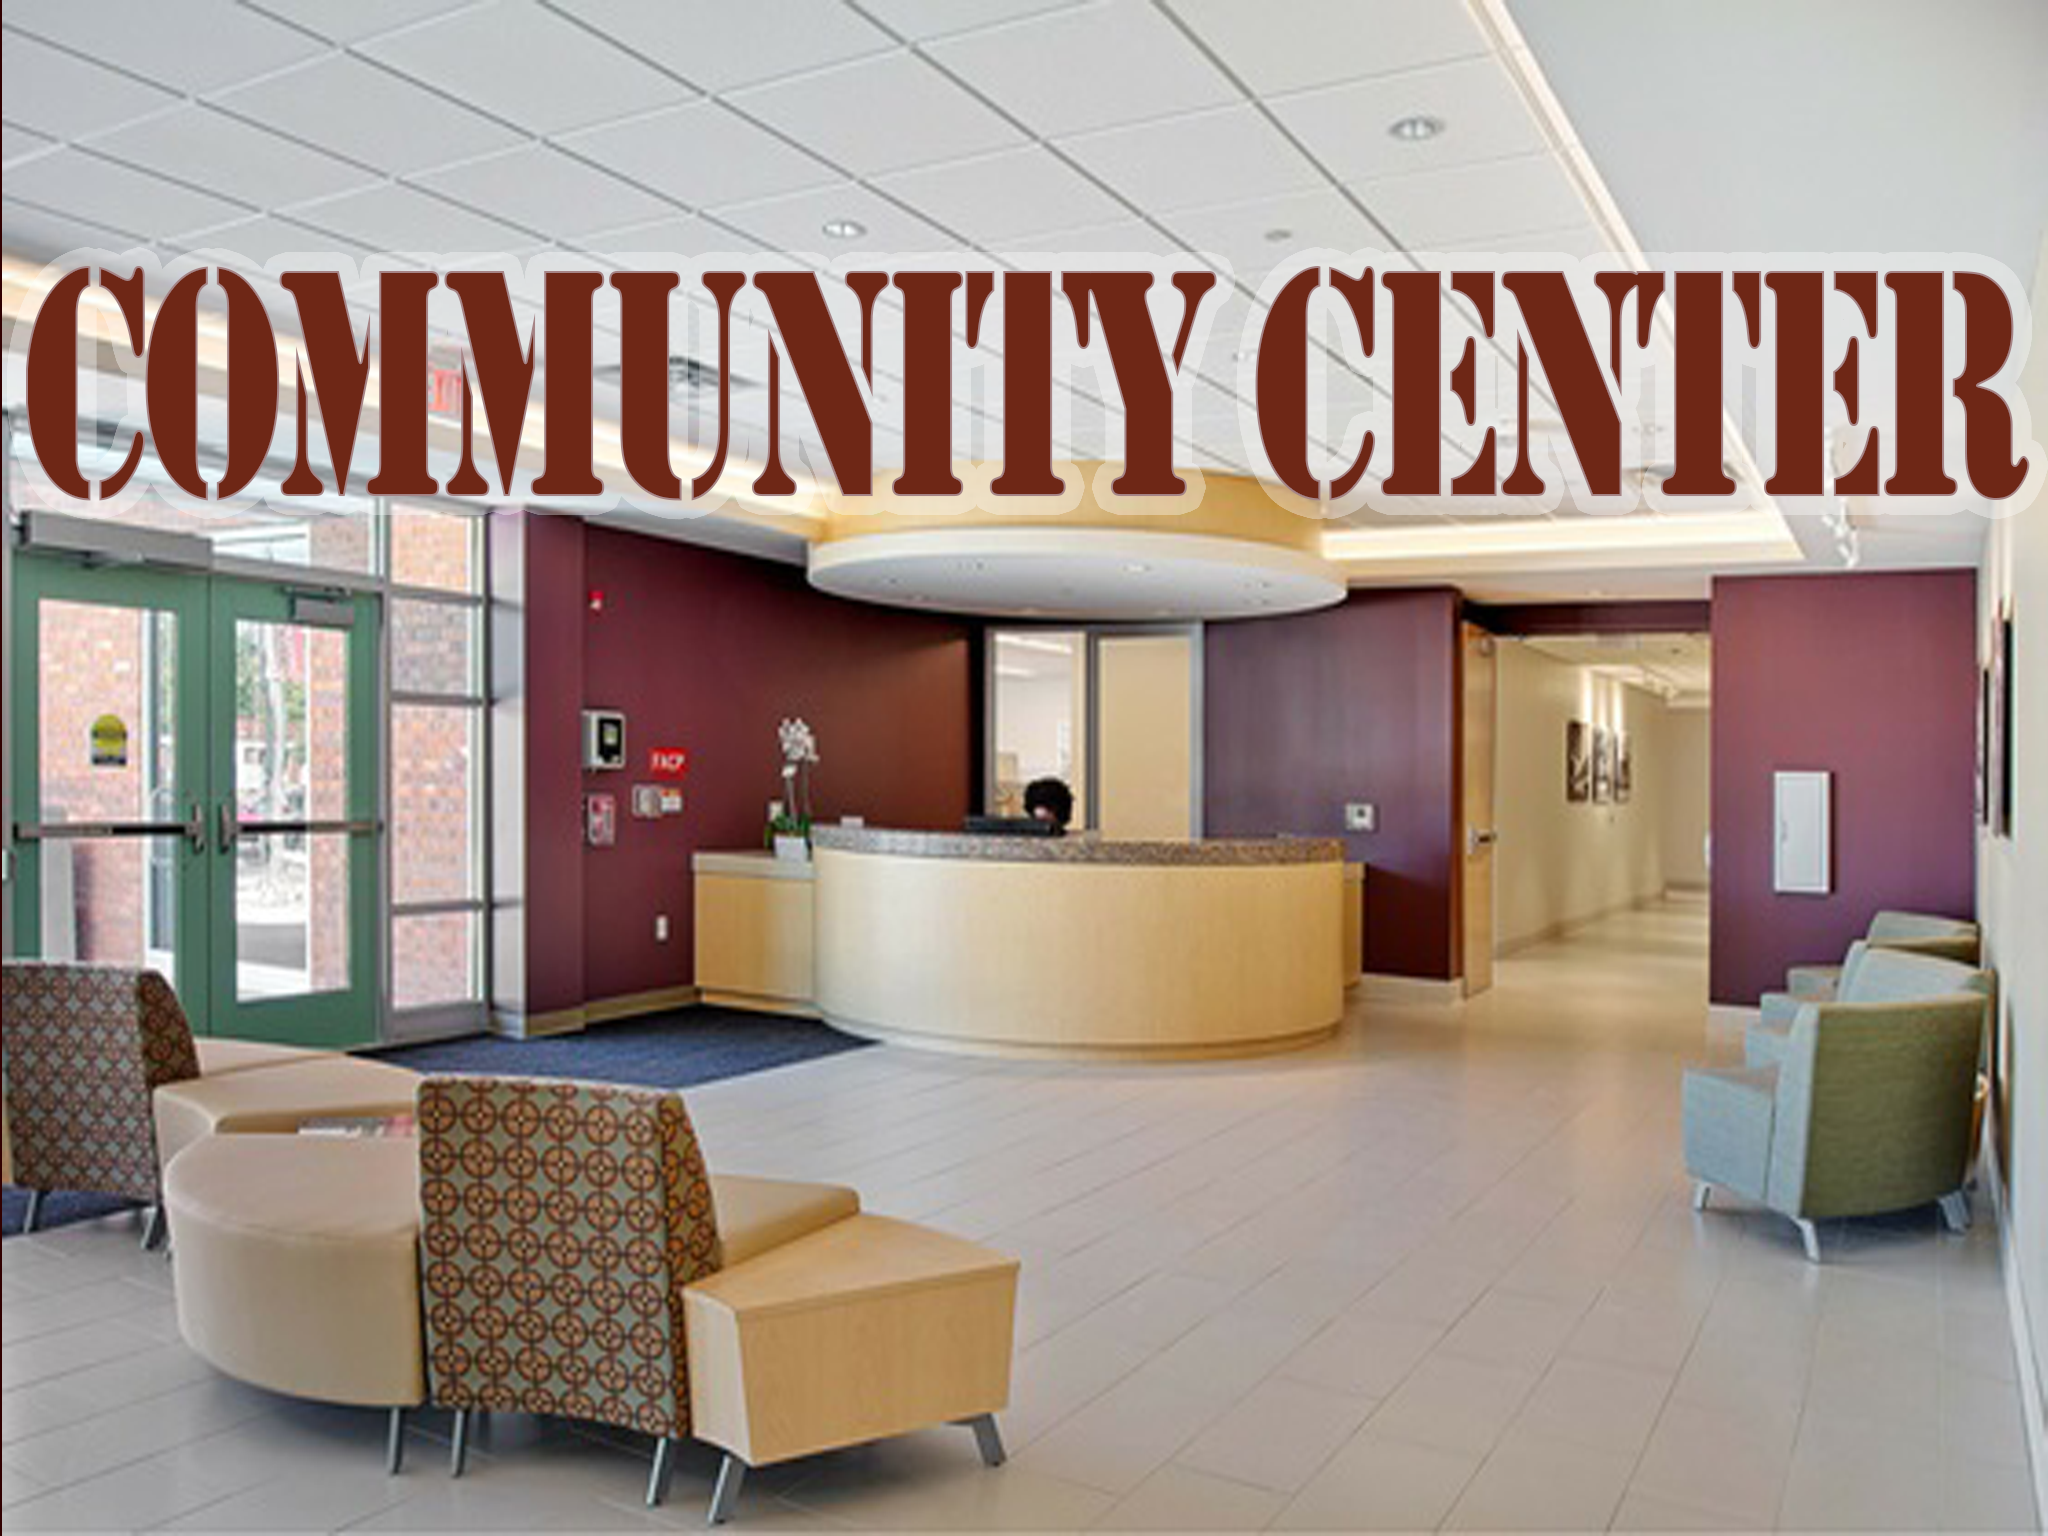 CommunityCenterGraphic